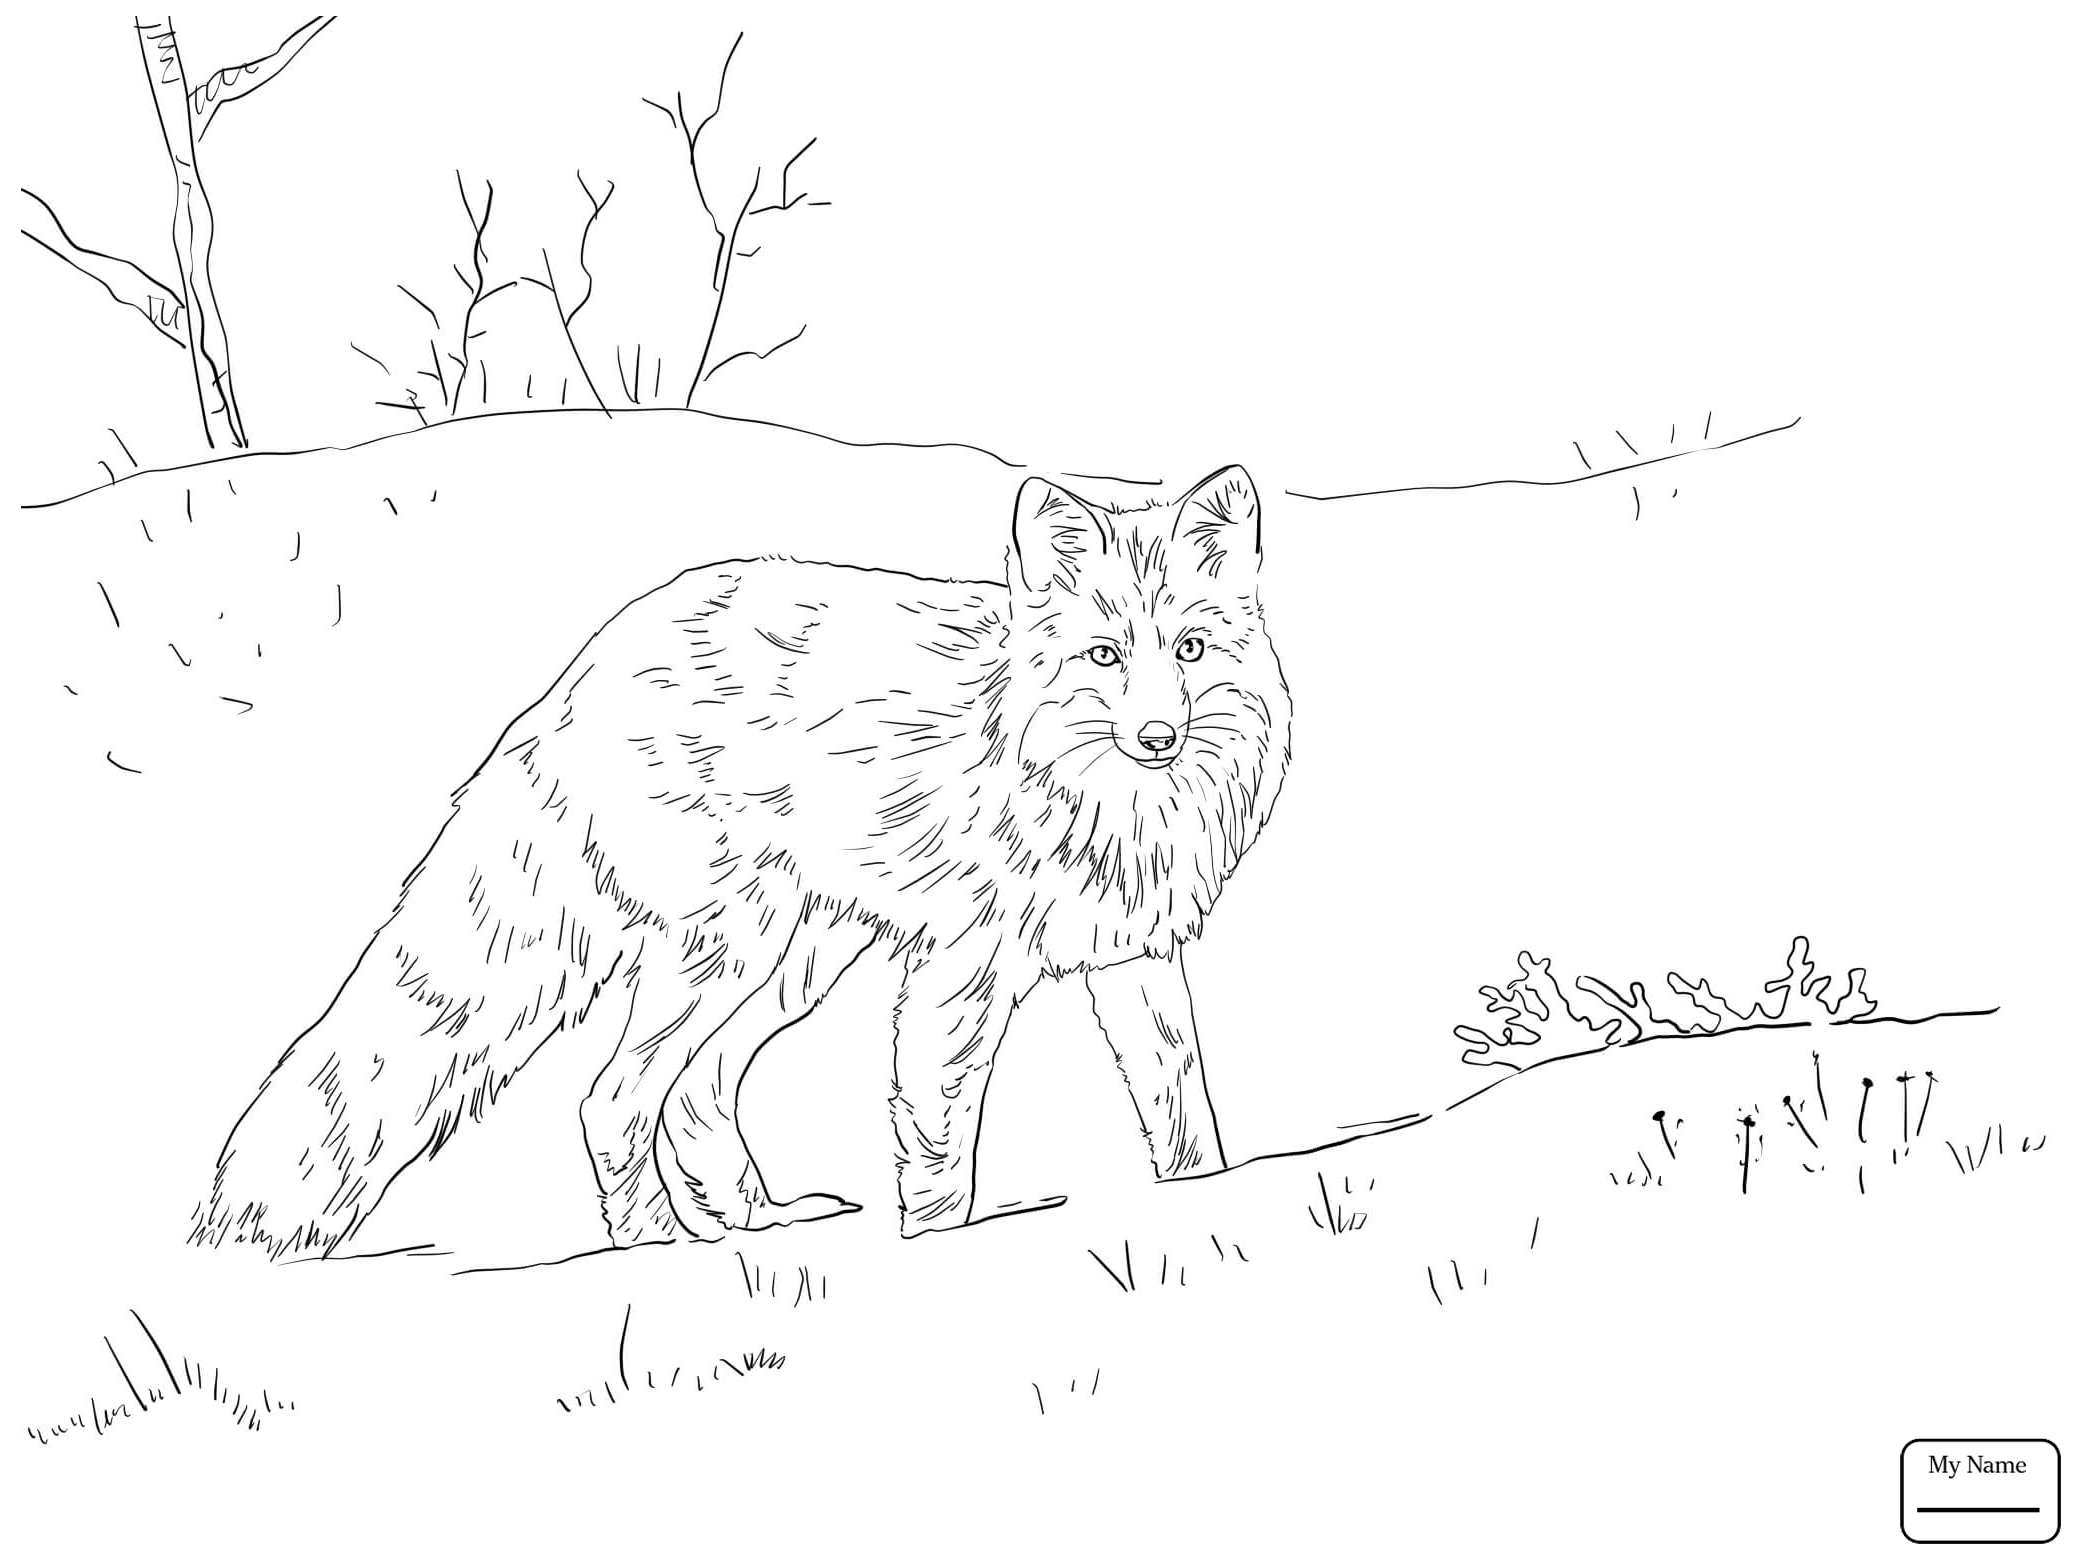 Red Fox Drawing at GetDrawings.com | Free for personal use Red Fox ...